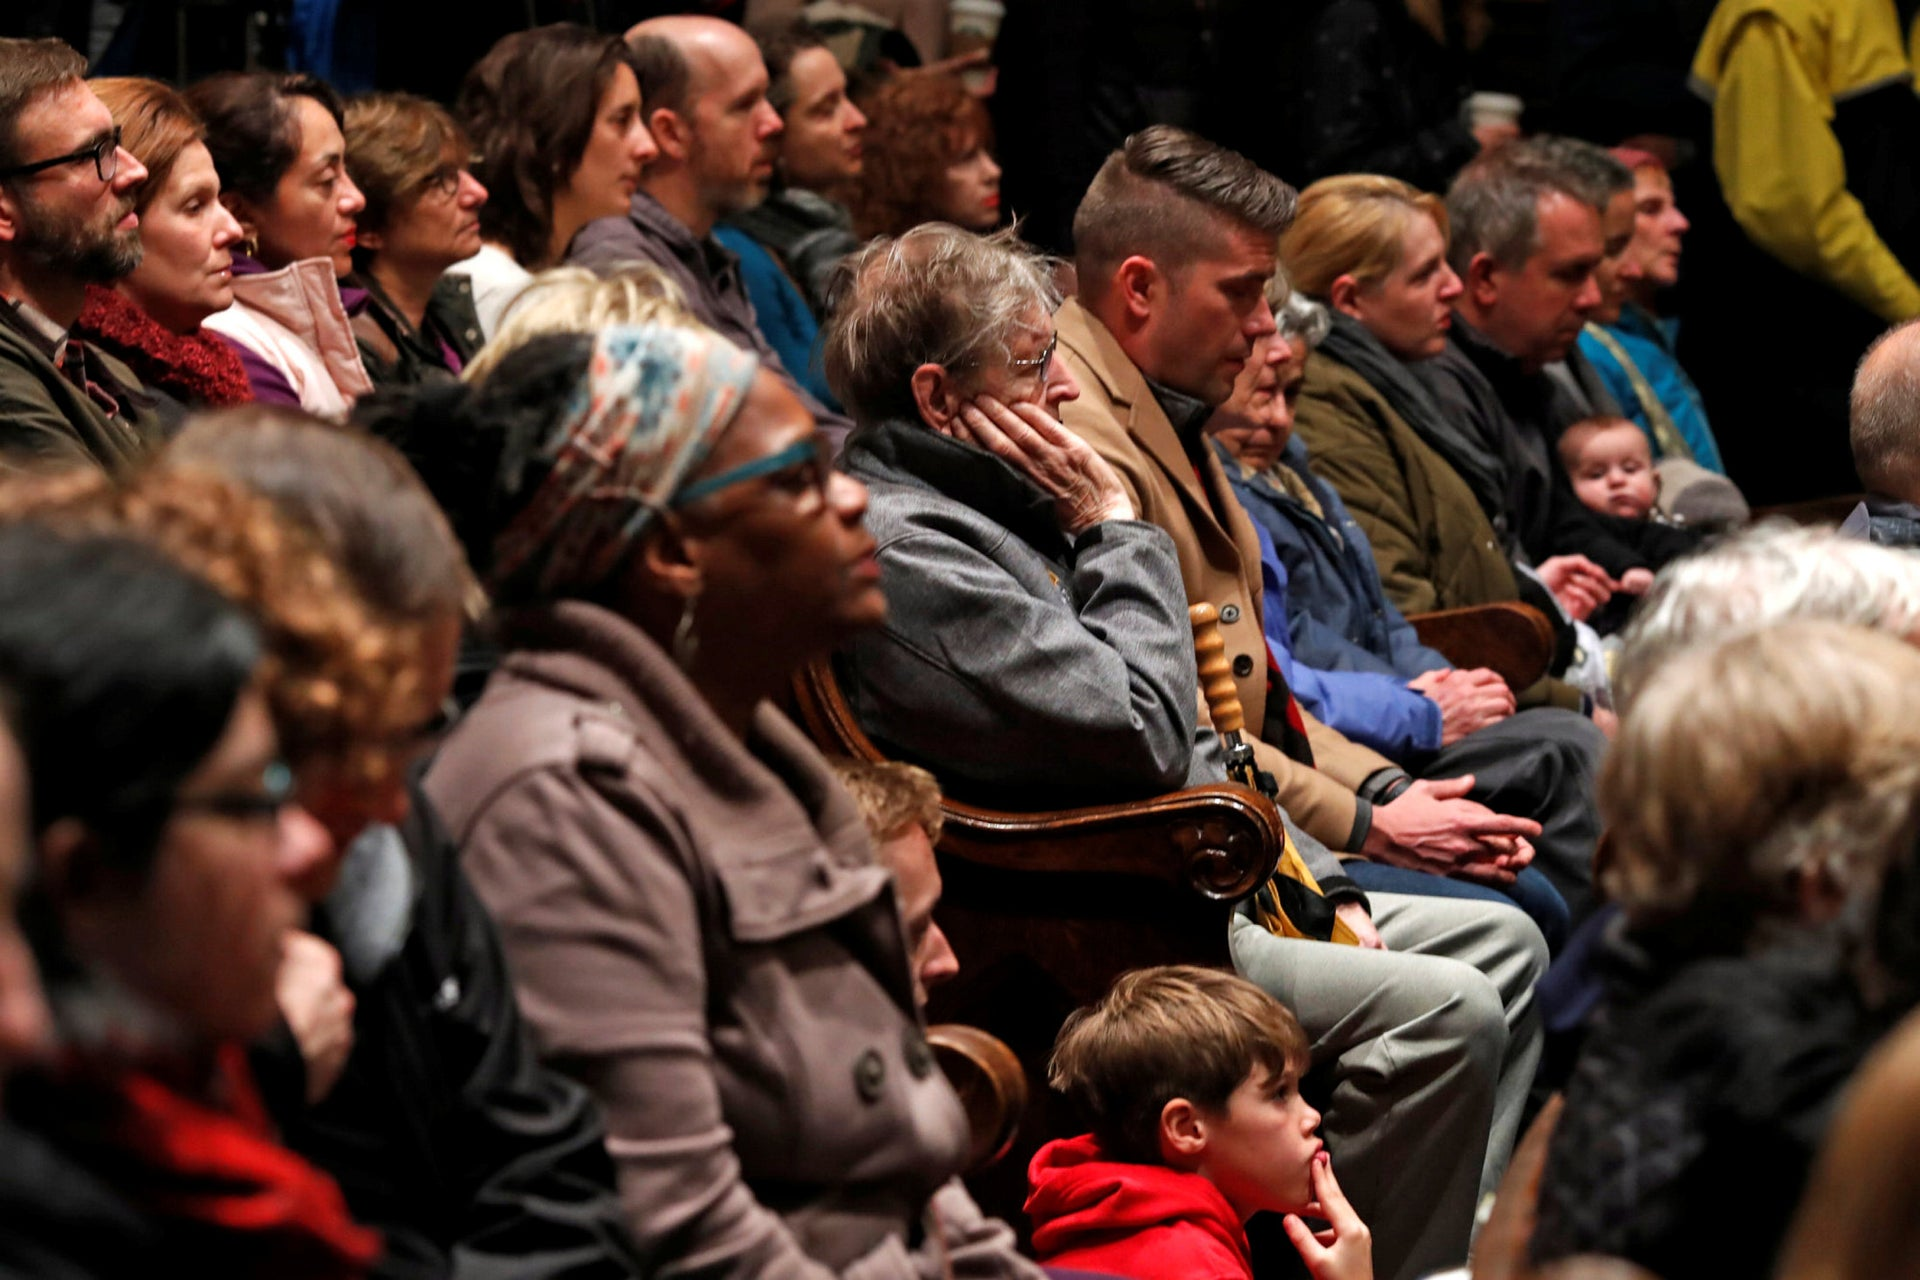 A church memorial service for victims of Pittsburgh synagogue shooting.